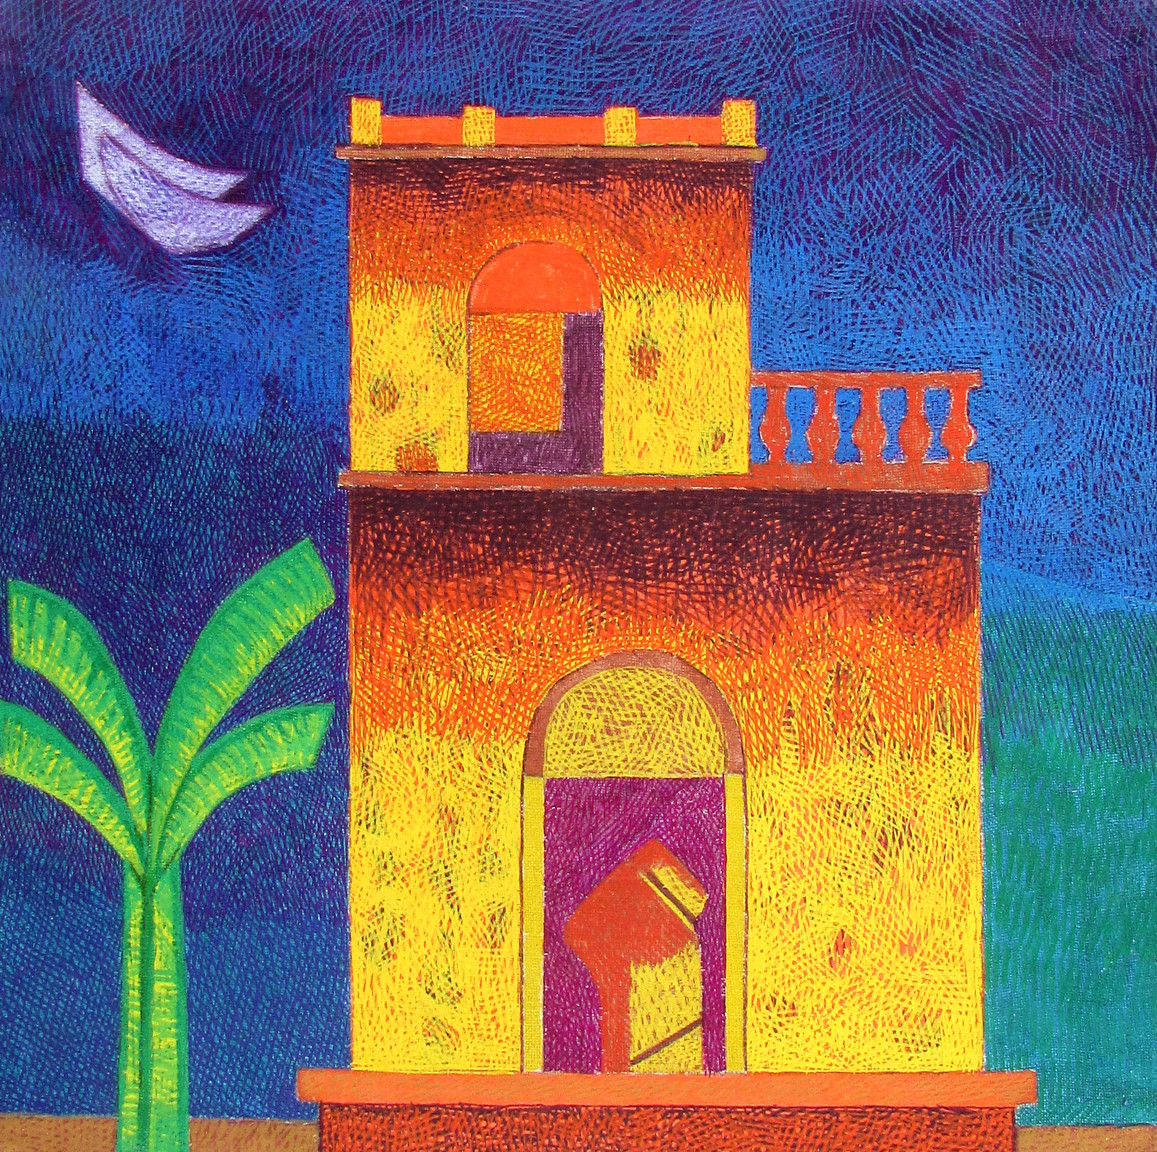 House series 2021A by Amit Biswas, Illustration Painting, Tempera on Canvas Board, Navy color